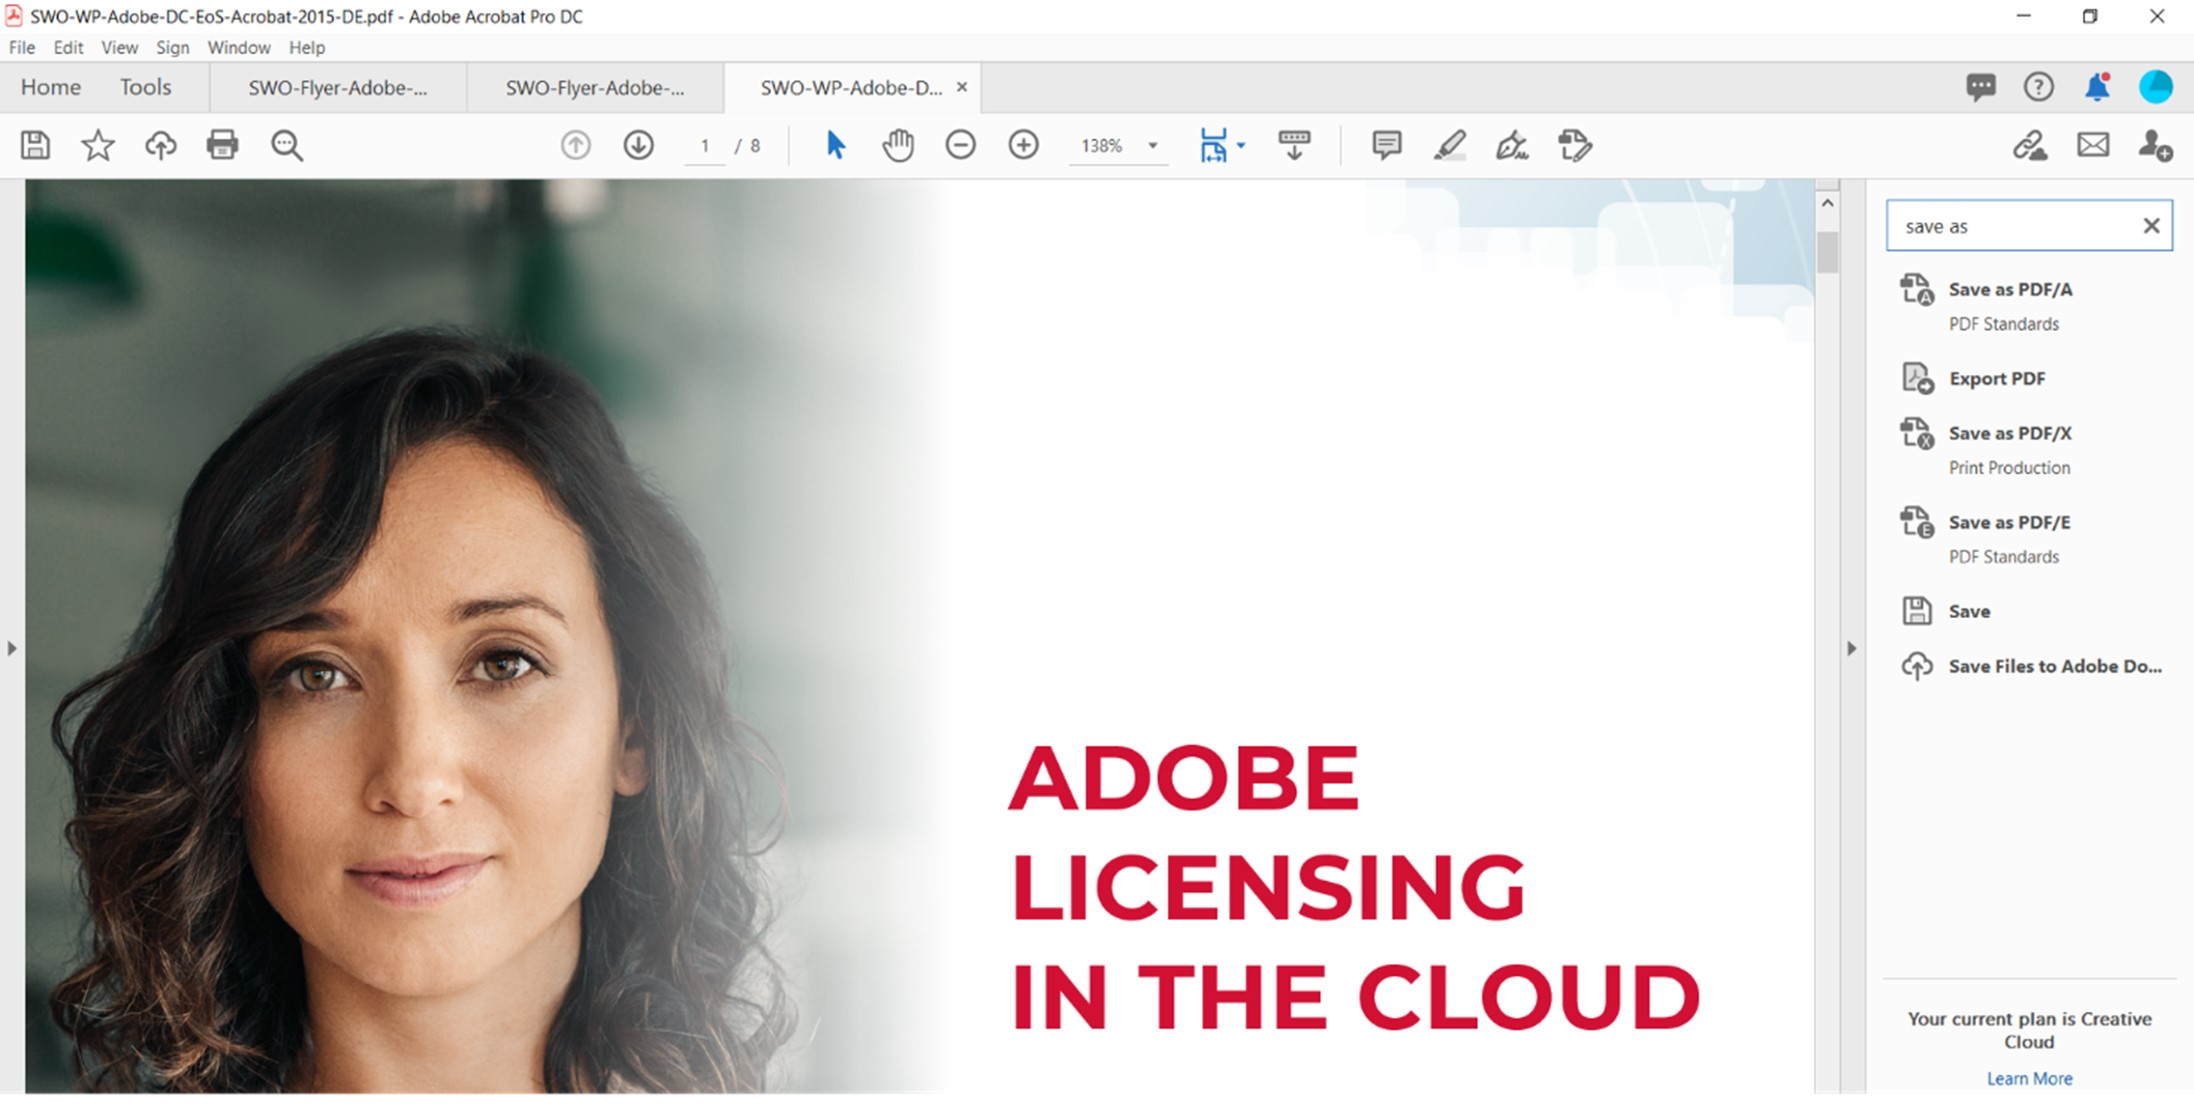 View in Adobe Acrobat Pro after enabling the PDF Standards tool